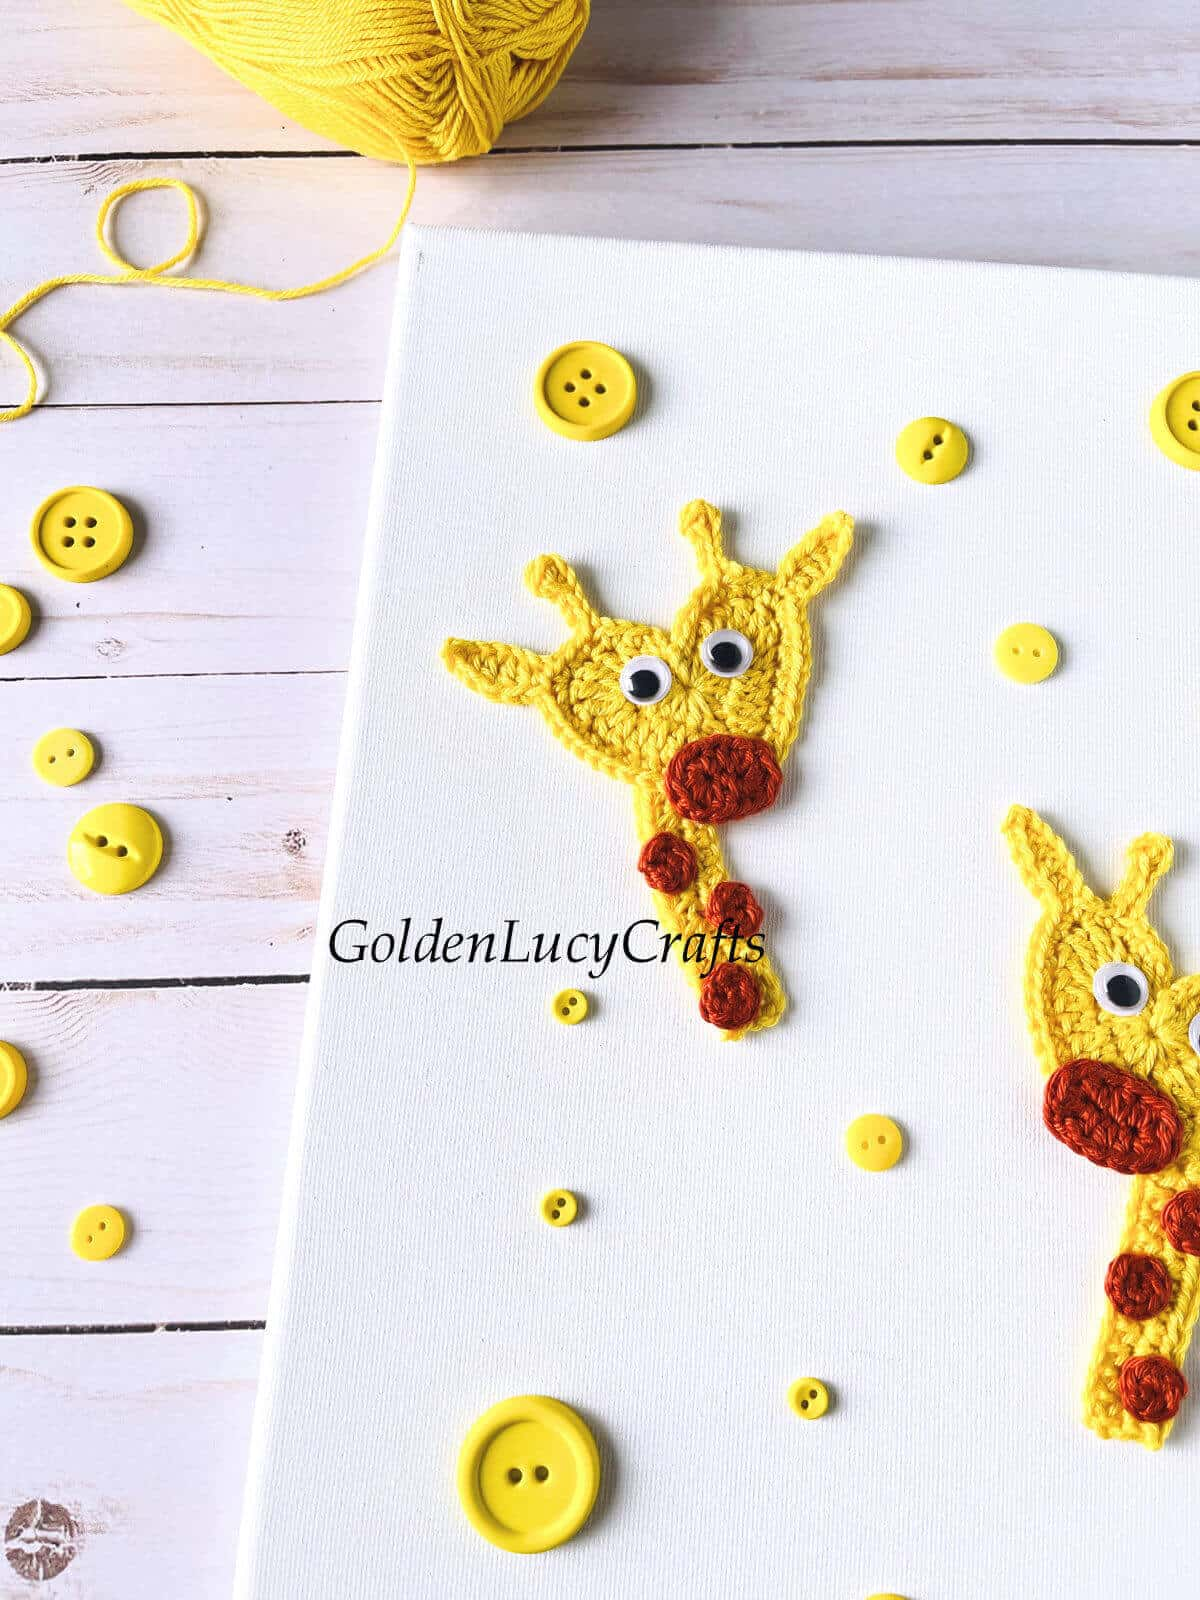 Two crochet giraffe appliques on canvas, yellow buttons, yellow yarn - close up picture.